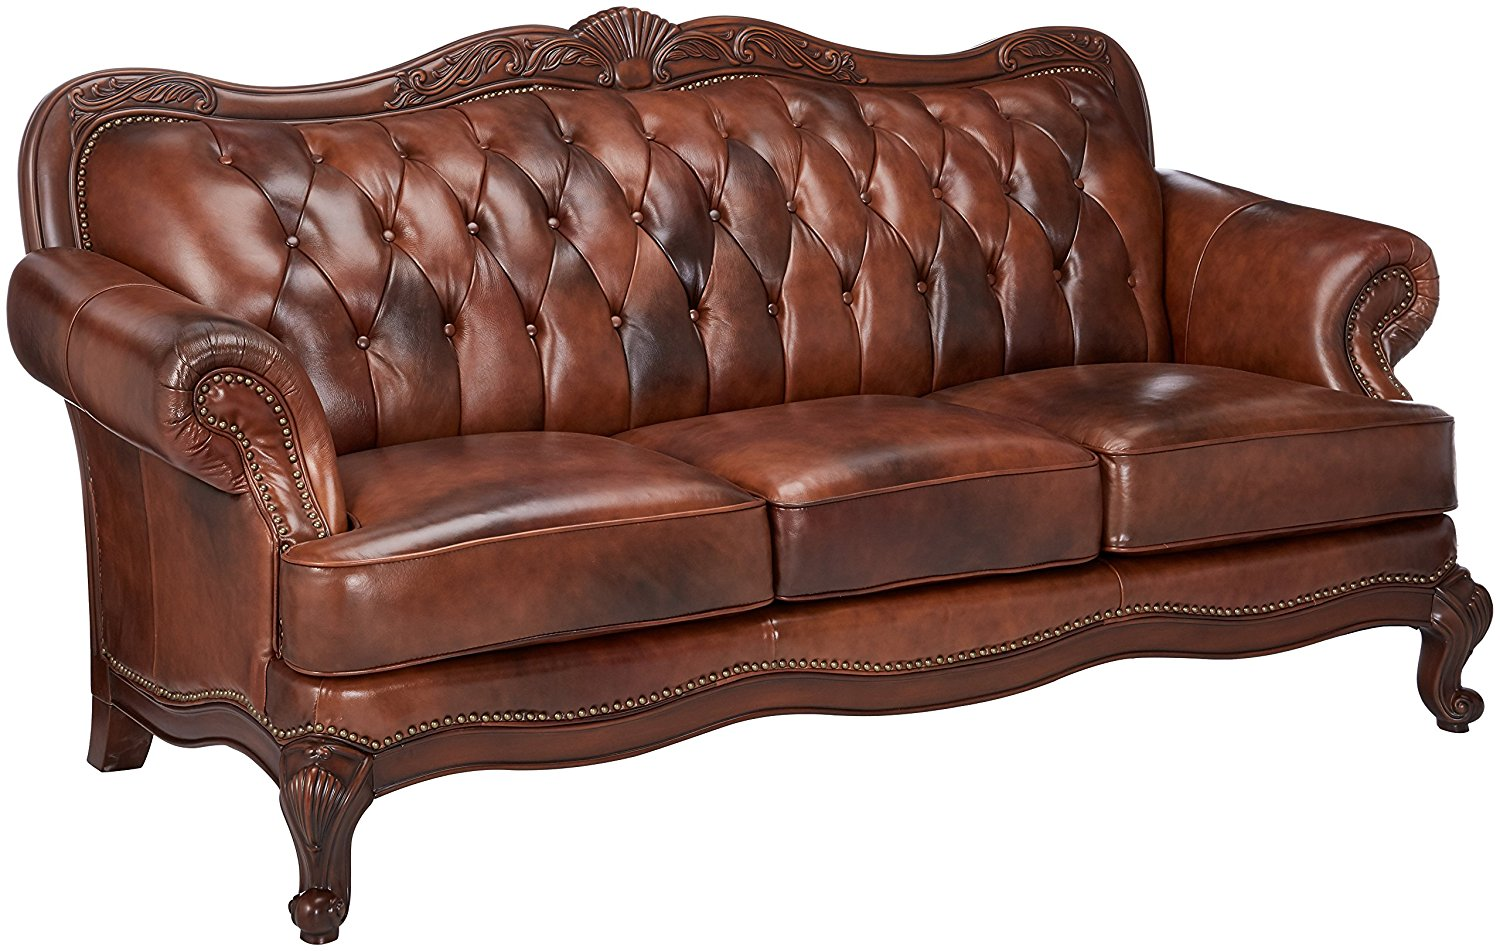 Coaster Home Furnishings Victoria is a stylish traditional leather sofa